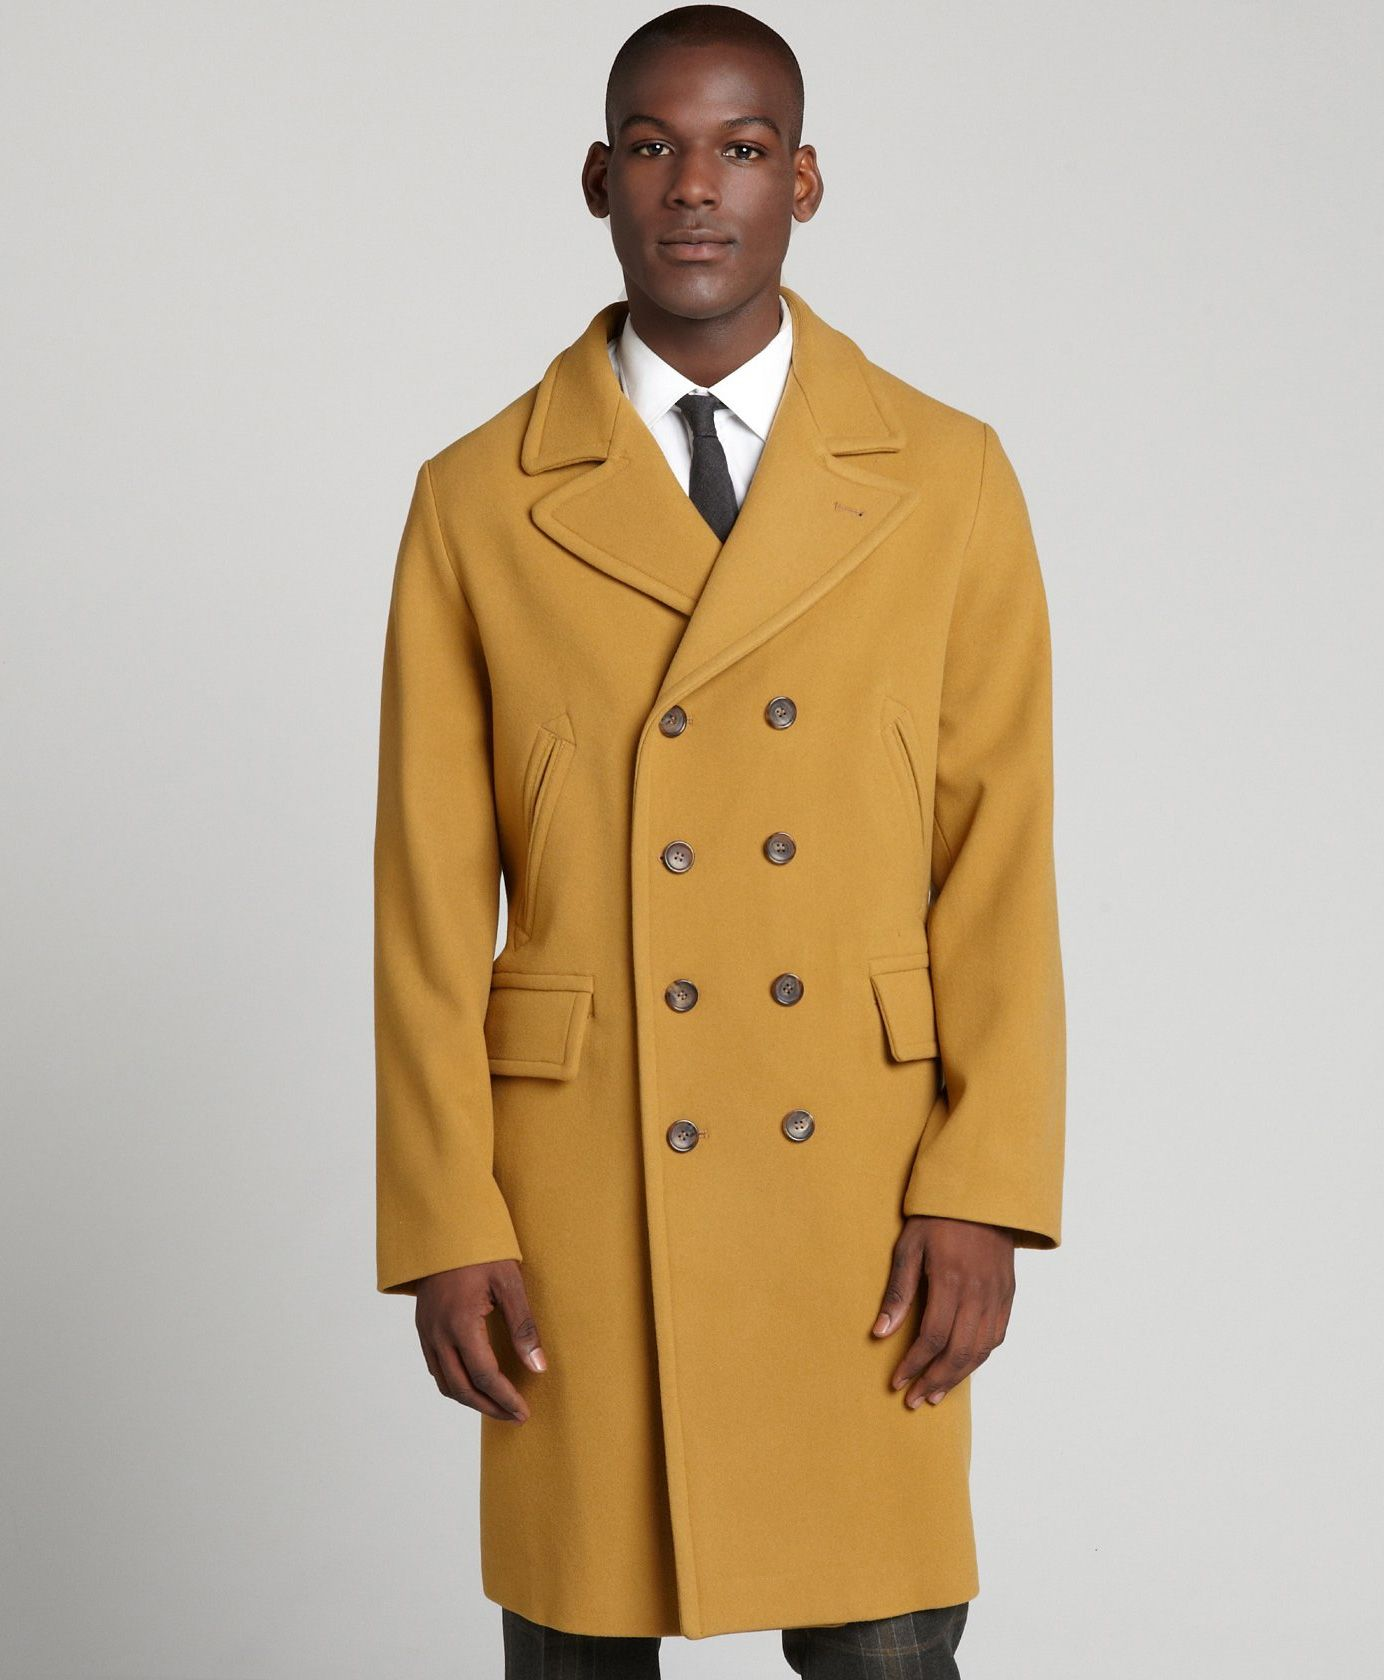 48564f4616 GUCCI Mustard Wool-Cashmere Double-Breasted Peacoat | Menswear ...